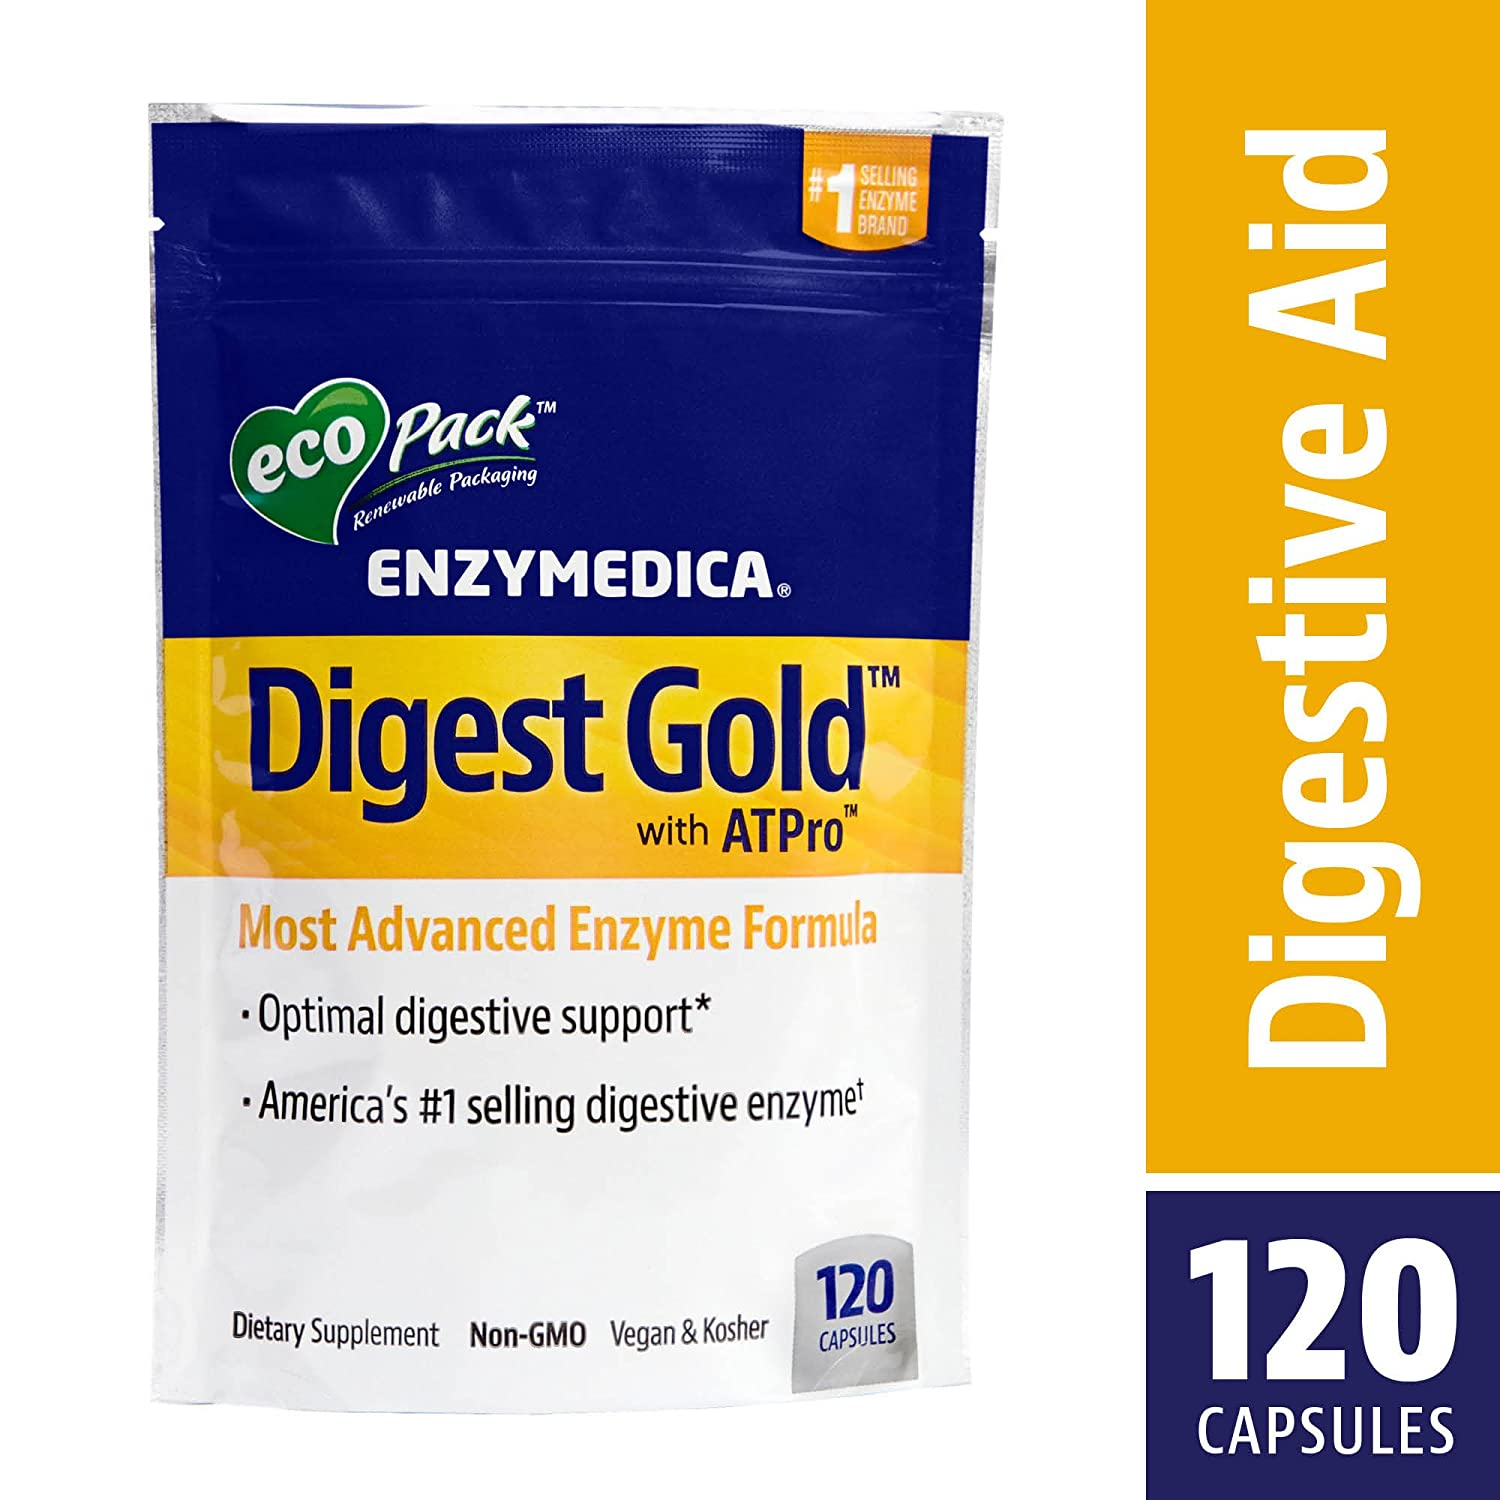 Amazon.com: Enzymedica - Digest Gold with ATPro, High Potency ...